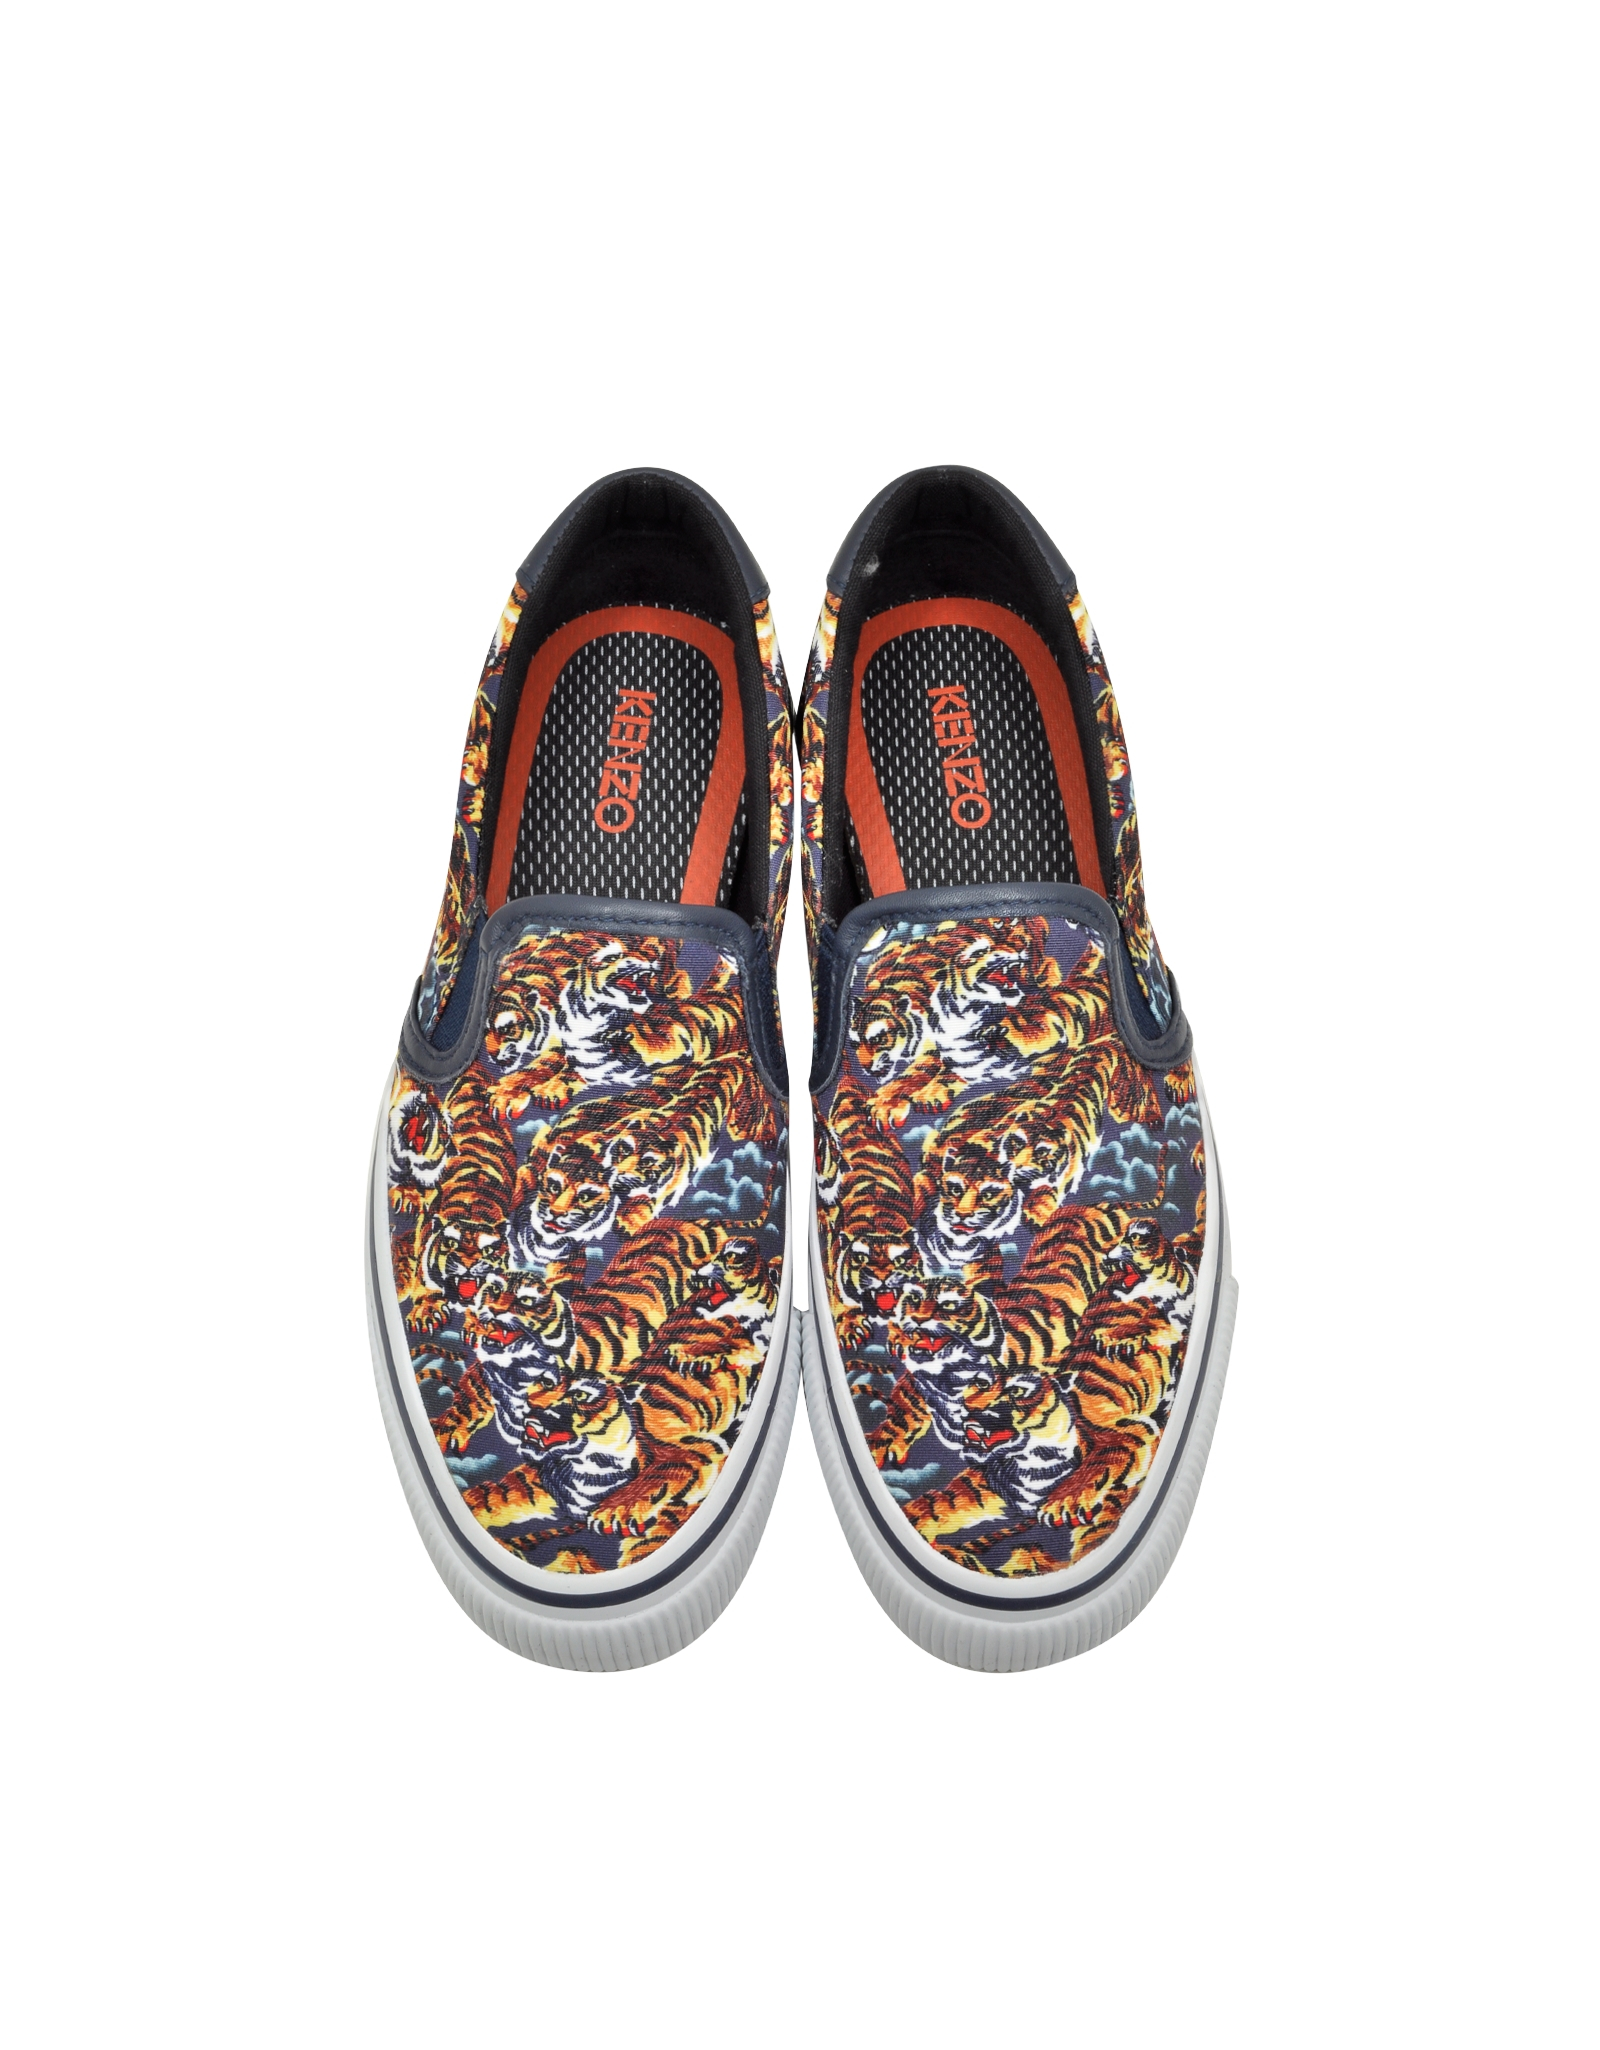 explore online Kenzo tiger embroidered slip-on sneakers hot sale for sale best cheap price wko8C